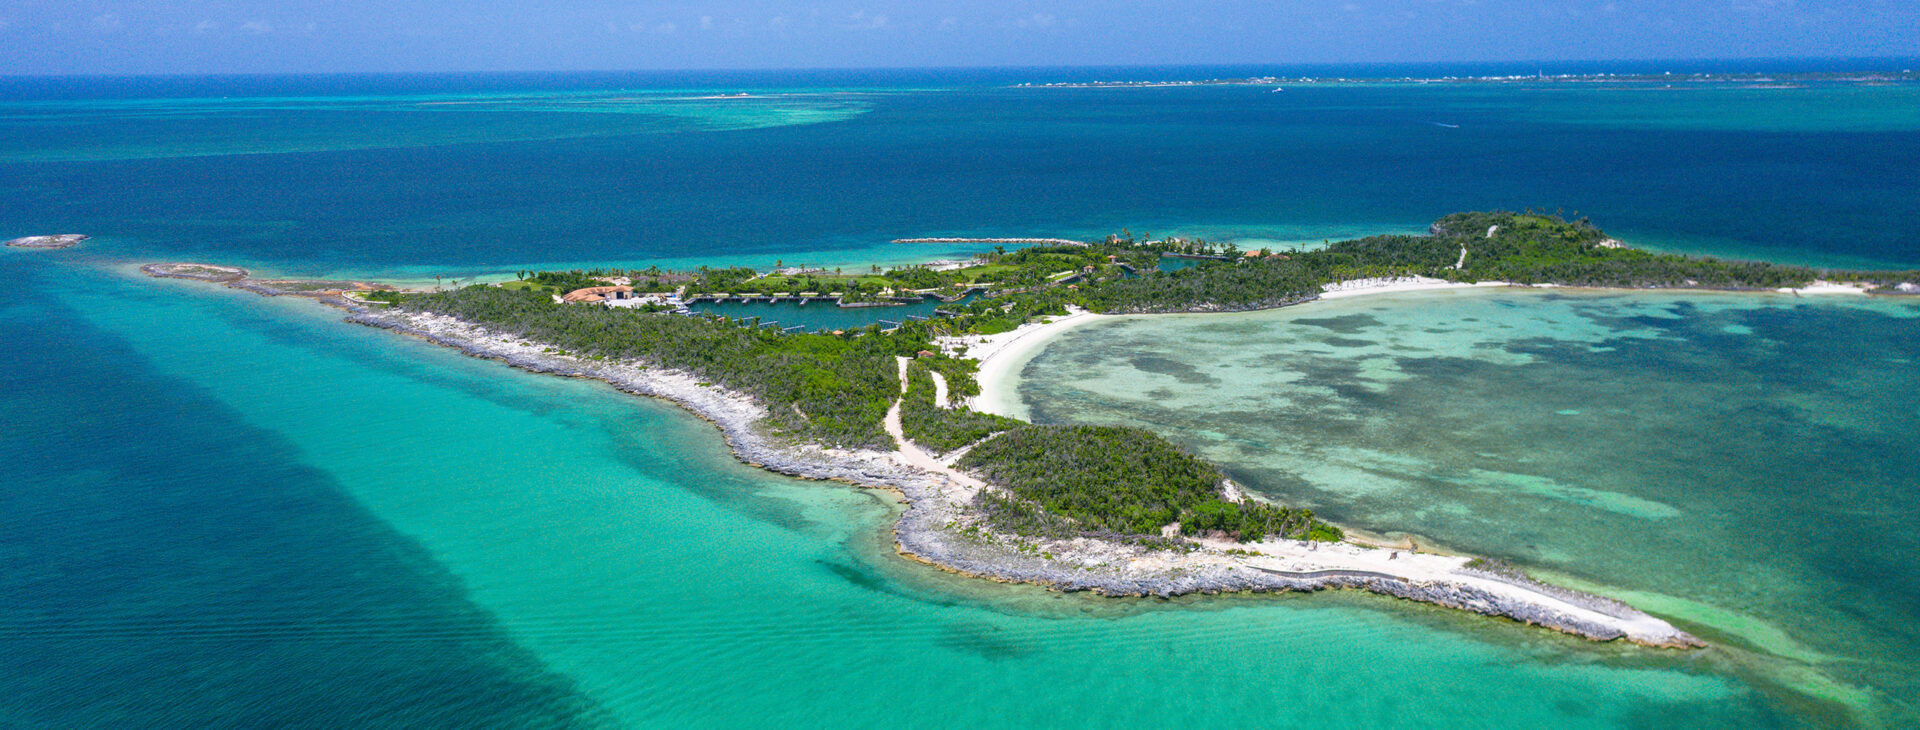 news-main-montage-hotels-resorts-announced-private-island-resort-in-the-bahamas.1596109458.jpg